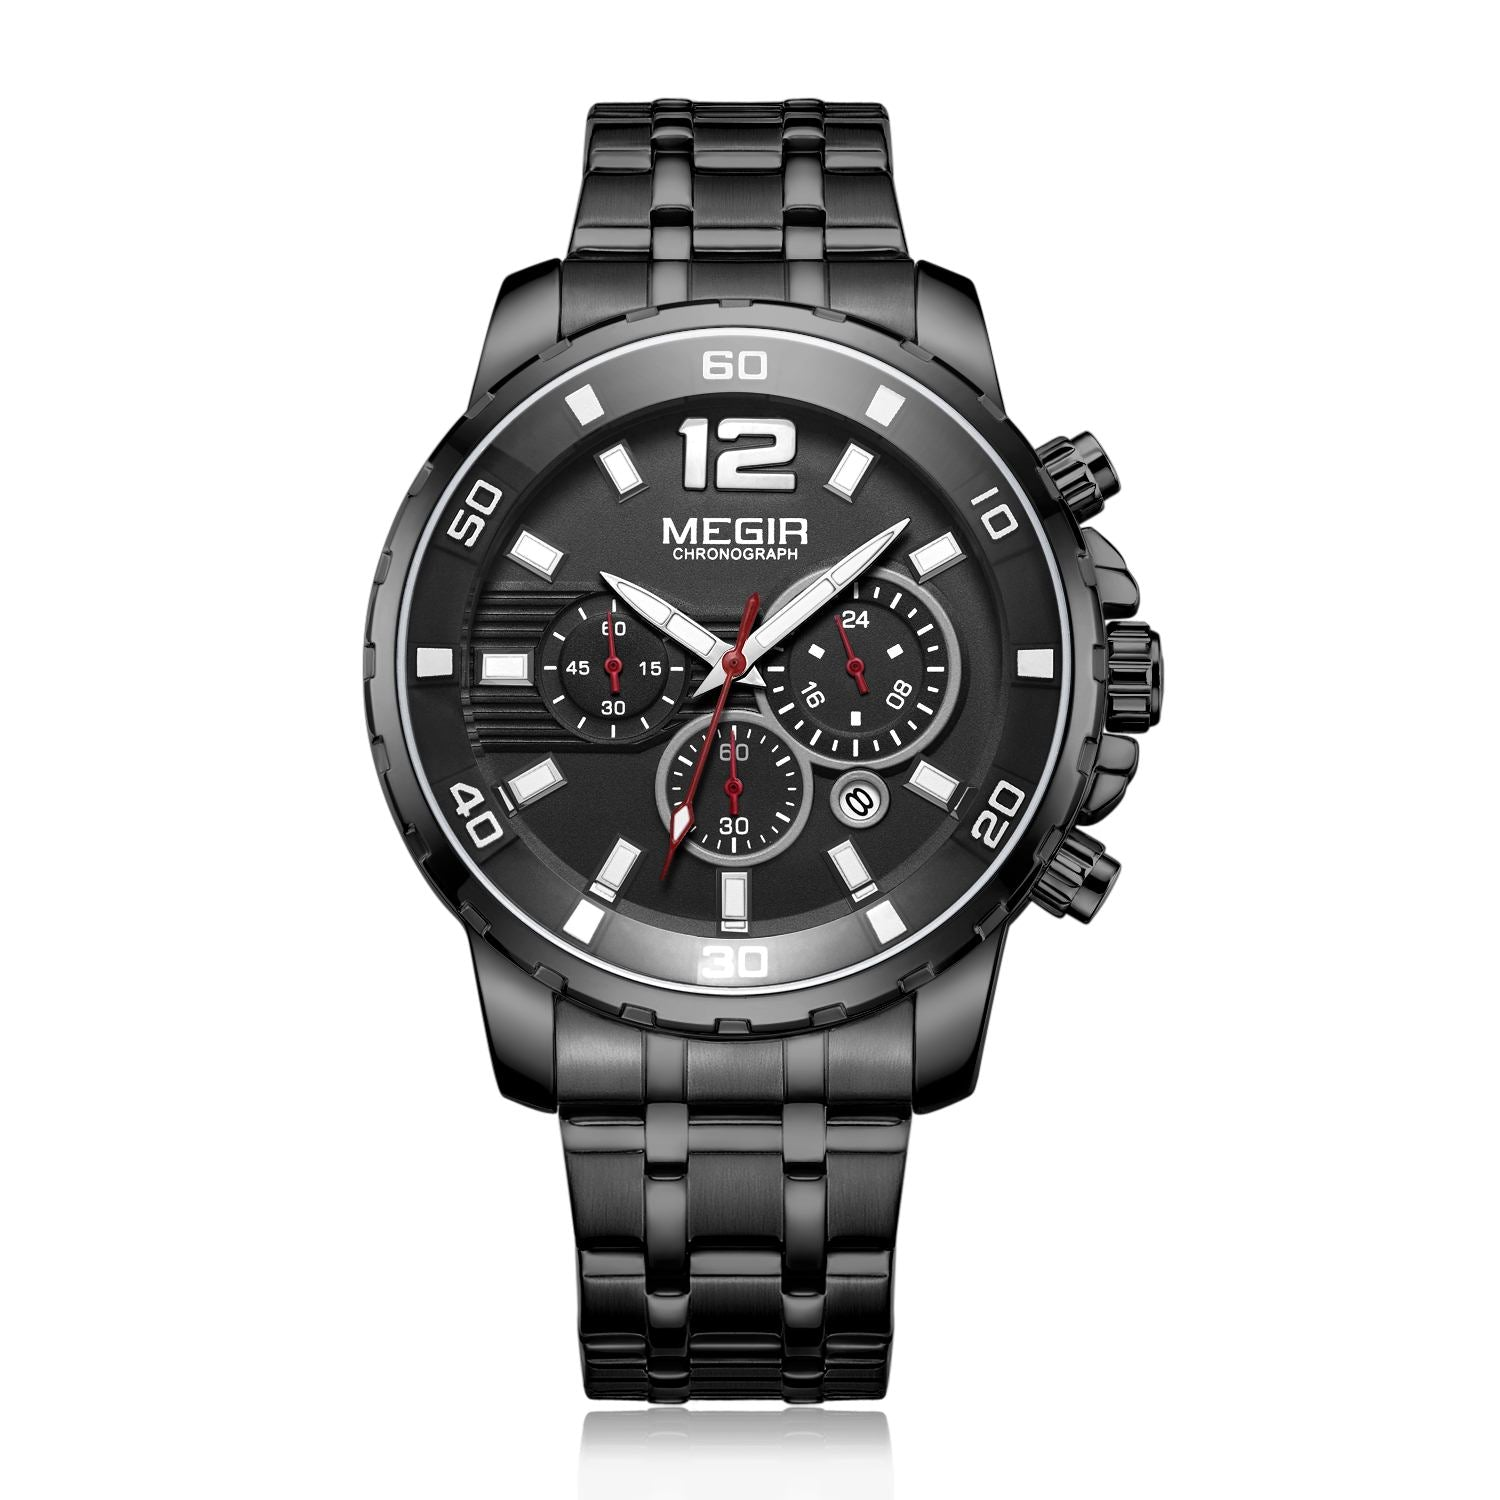 MEGIR Men's Quartz Chronograph Watch 2068 - MEGIR